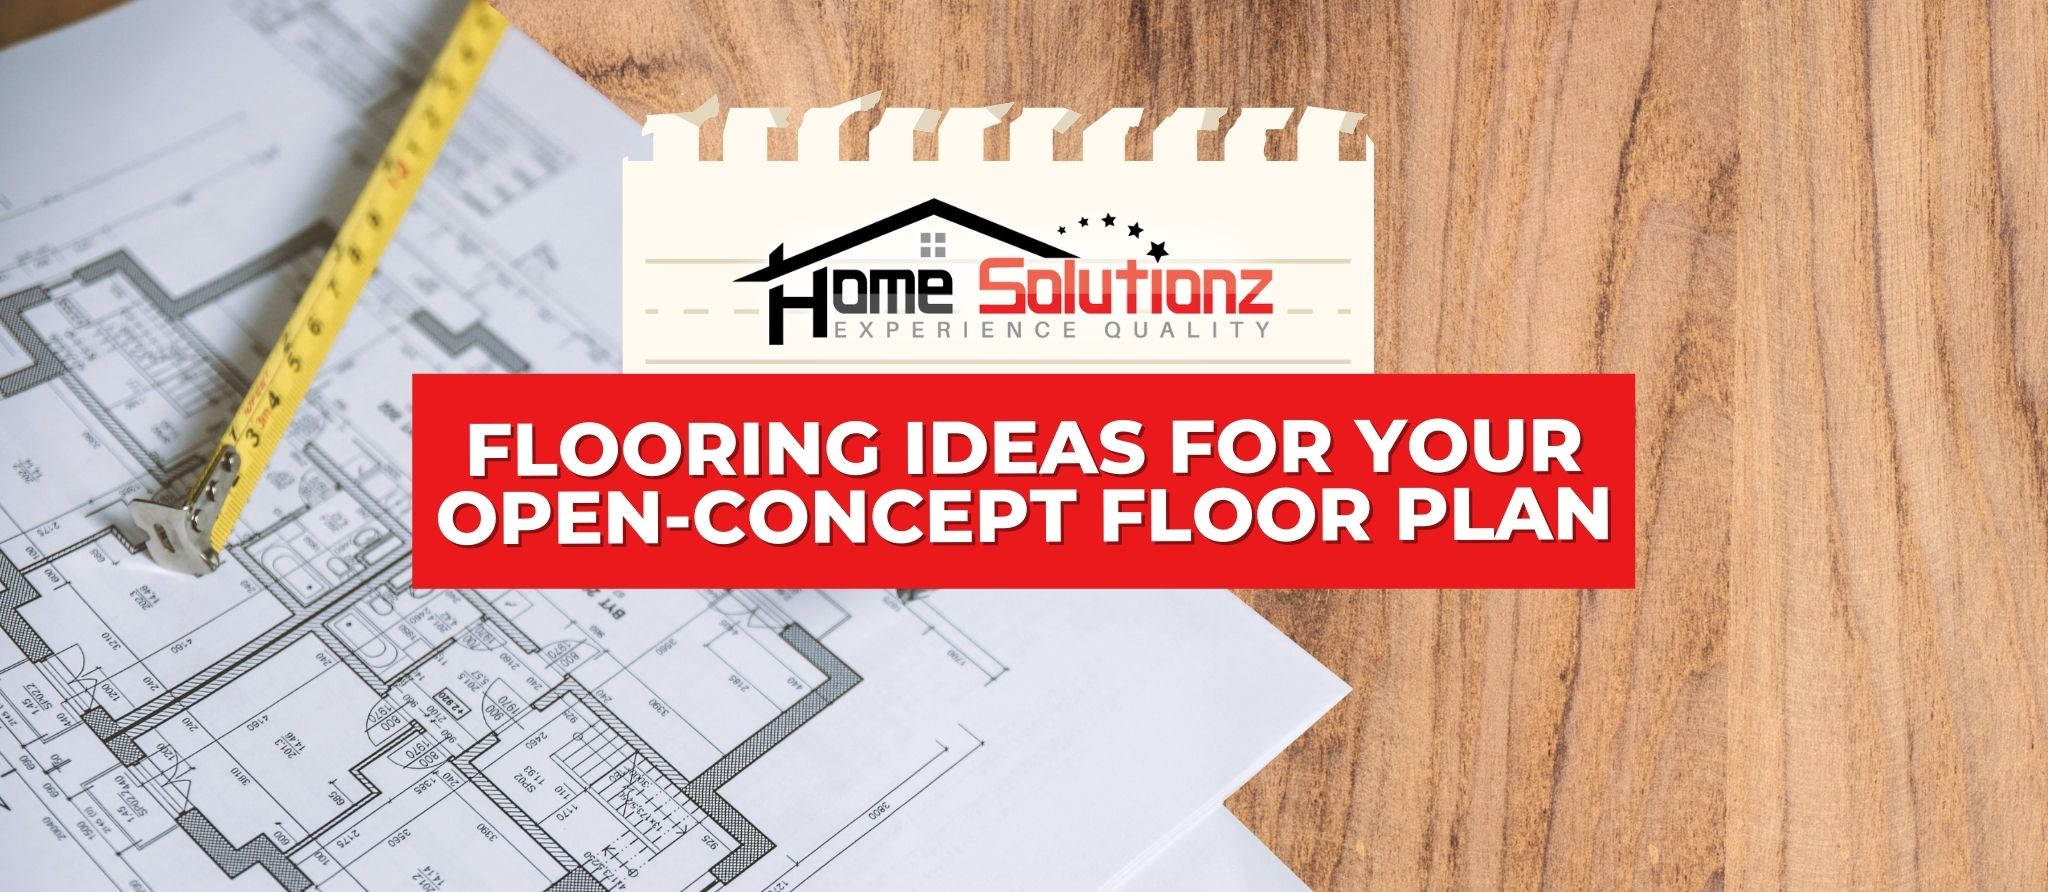 Flooring Ideas For Your Open-Concept Floor Plan - Home Solutionz